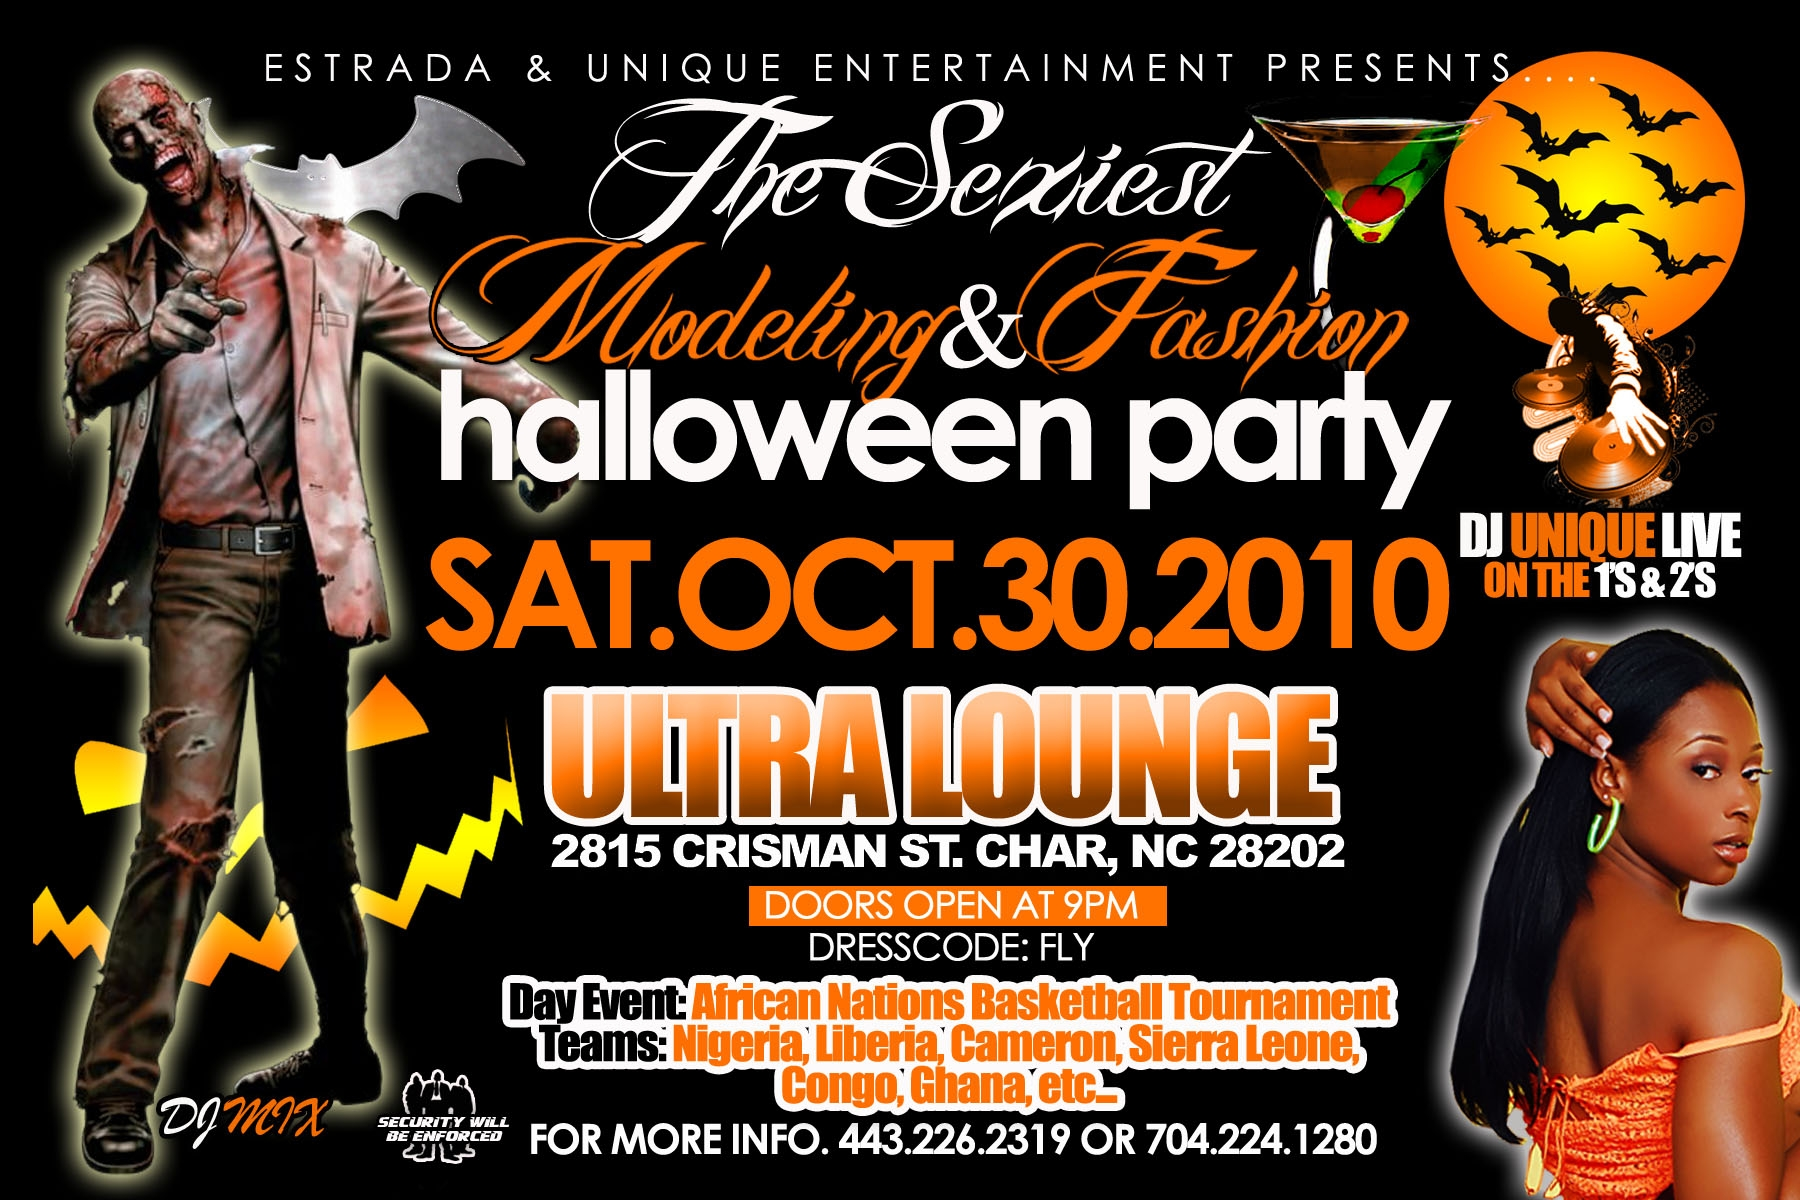 Modeling & Fashion Halloween Party